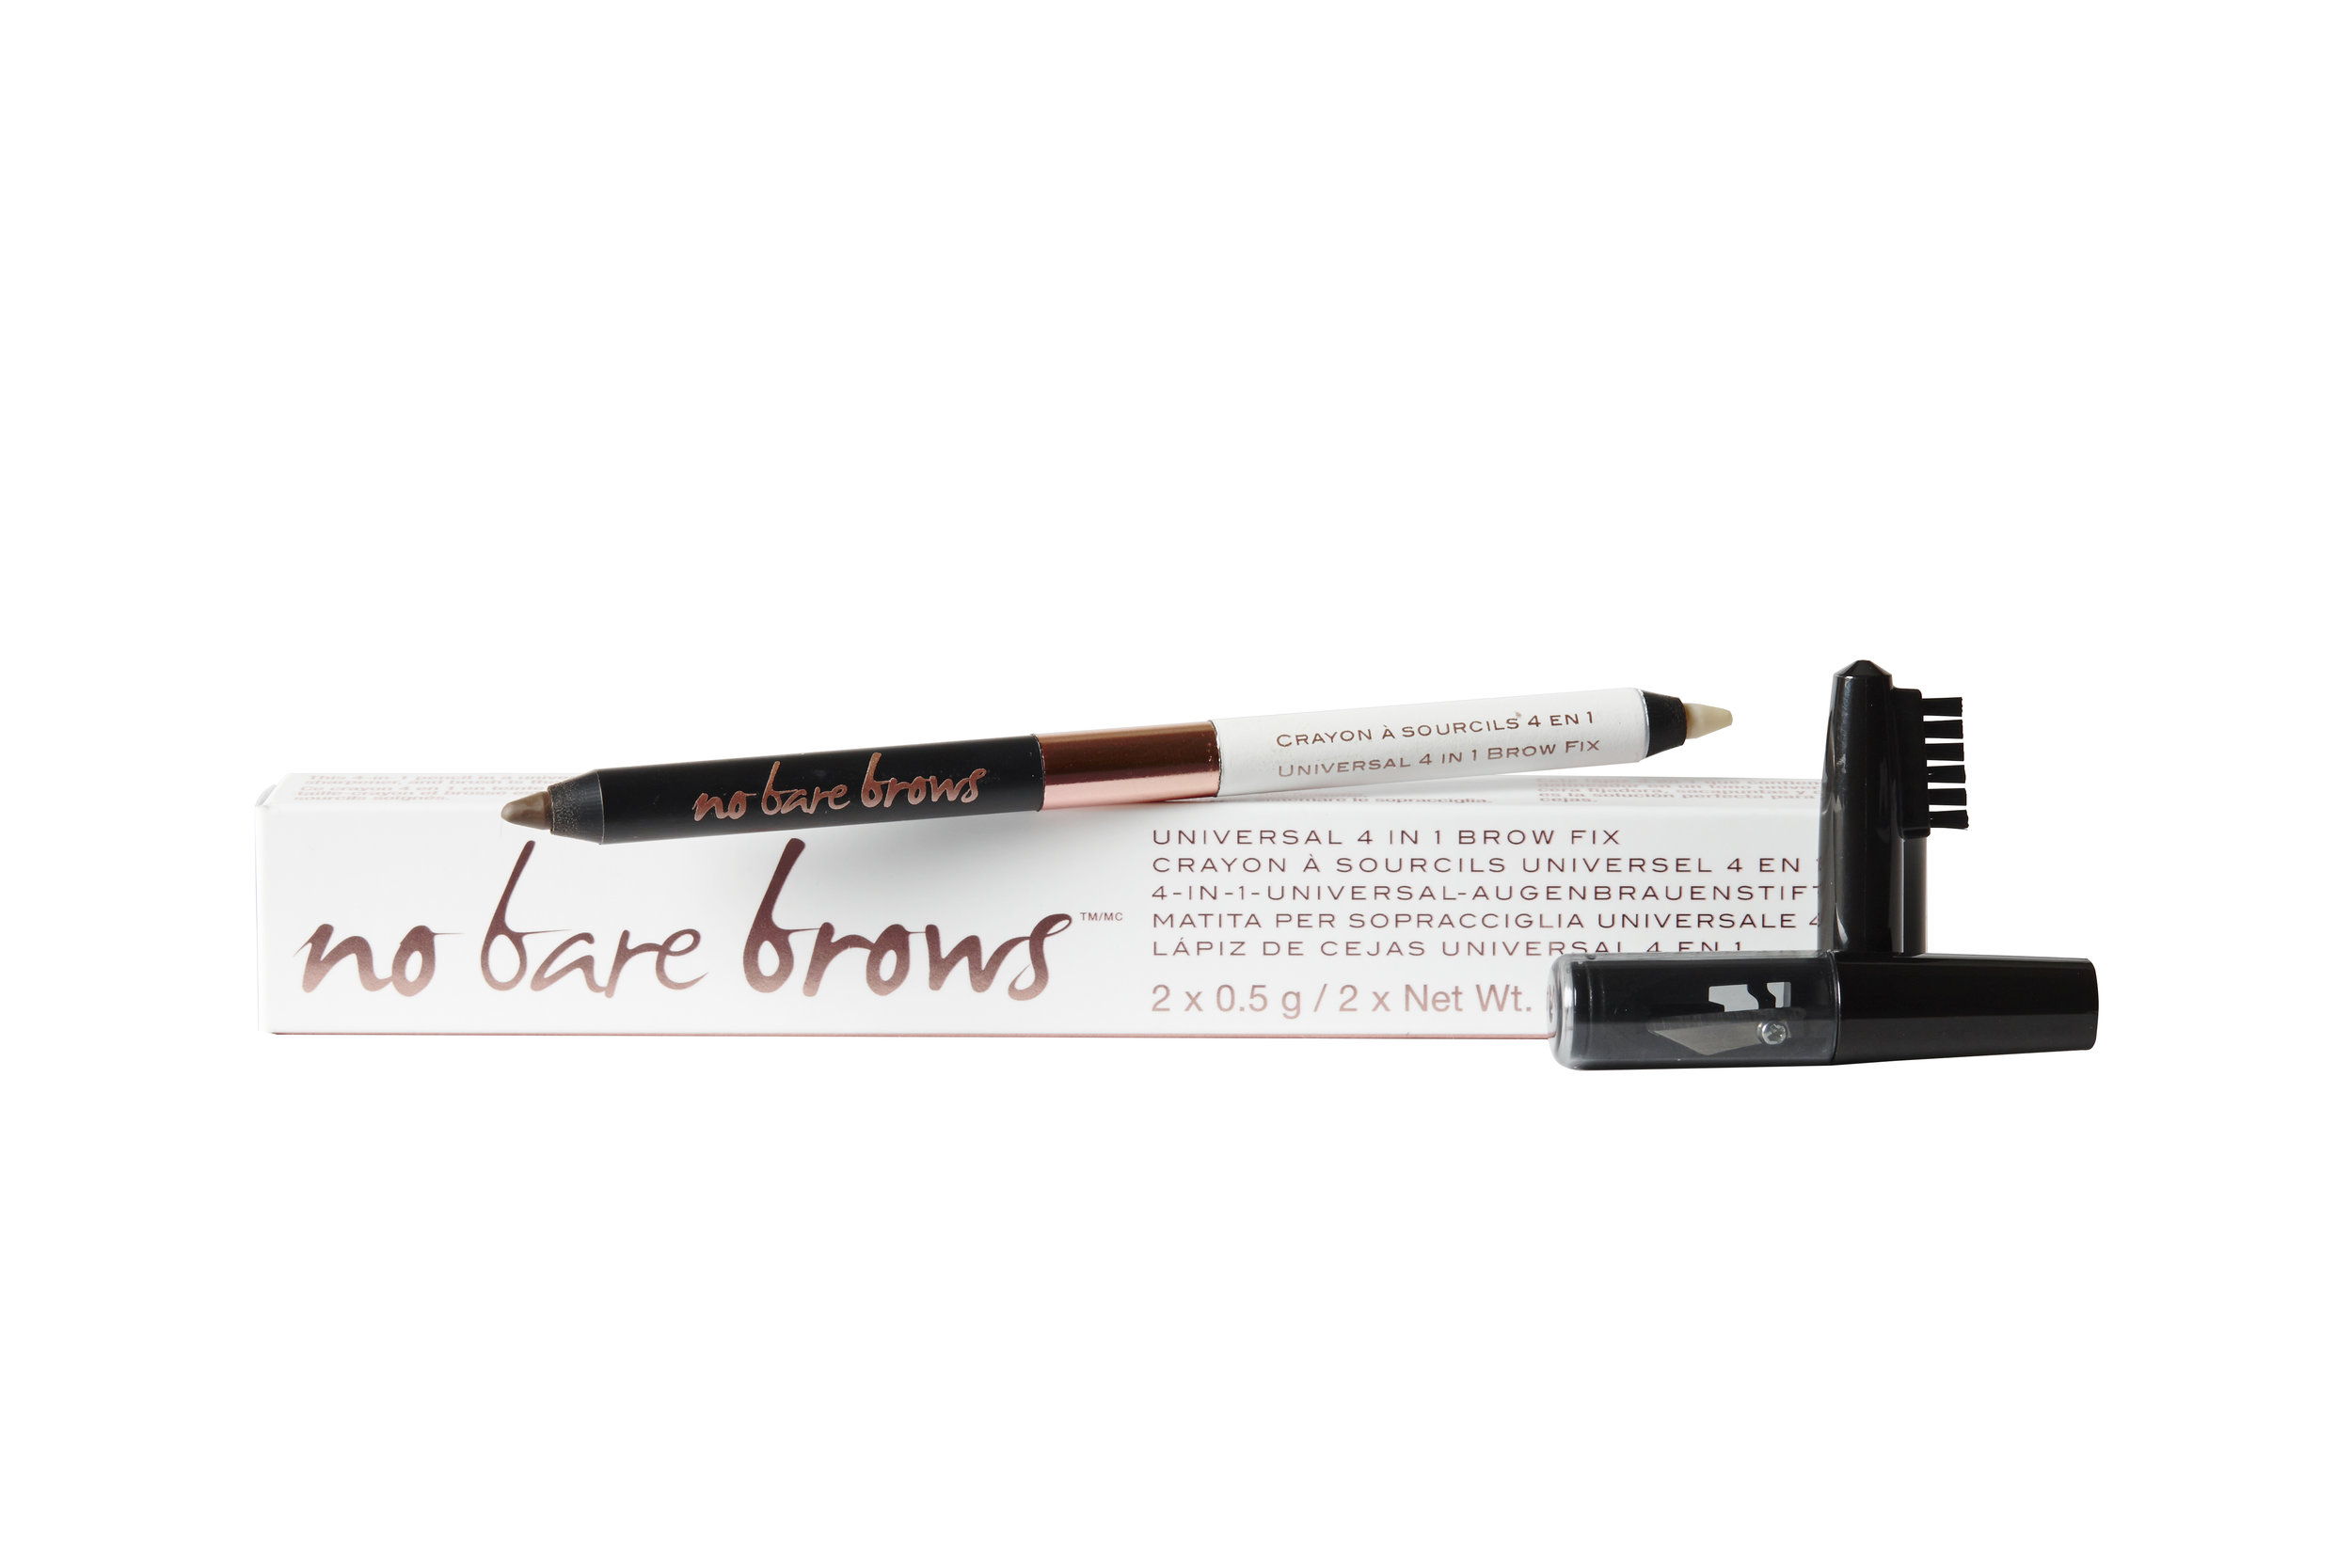 KNOW Cosmetics No Bare Brows - Universal 4-in-1 Brow Fix $24.00. Available at Shoppers Drug Mart; knowcosmetics.com.